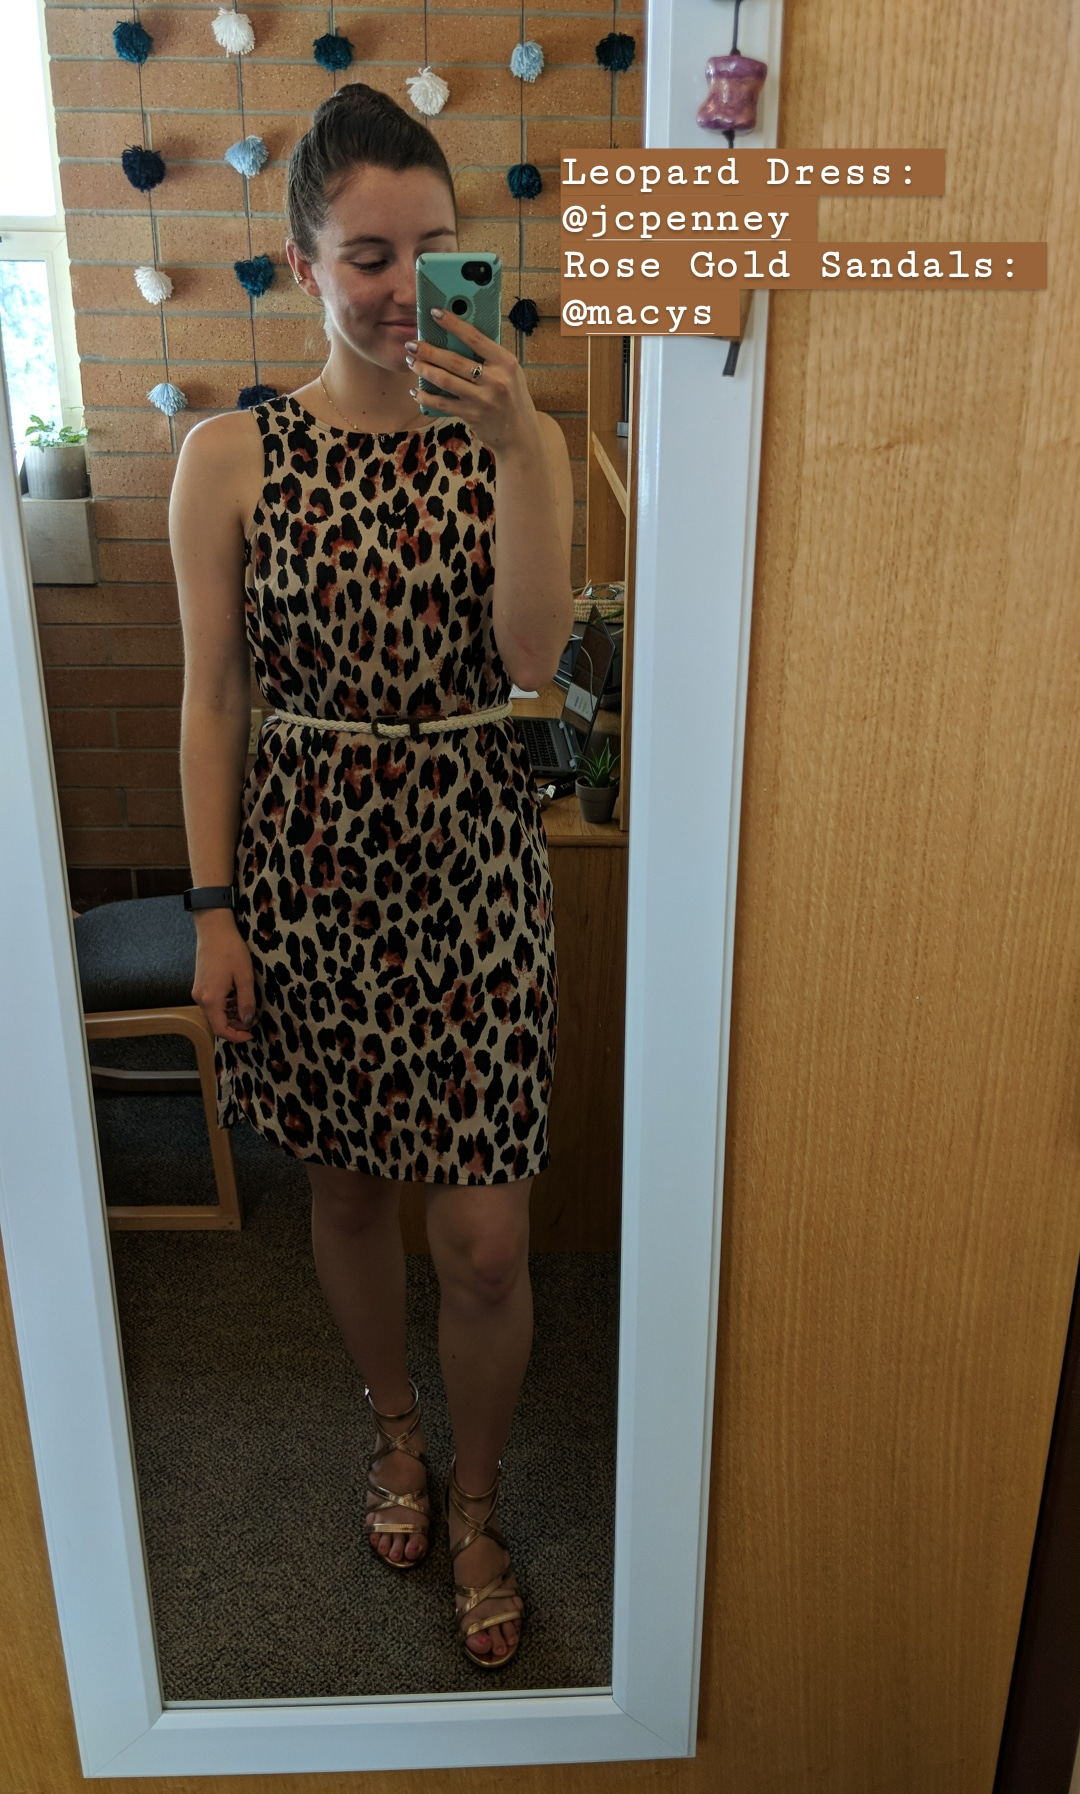 leopard dress, trendy, JCPenney, rose gold sandals